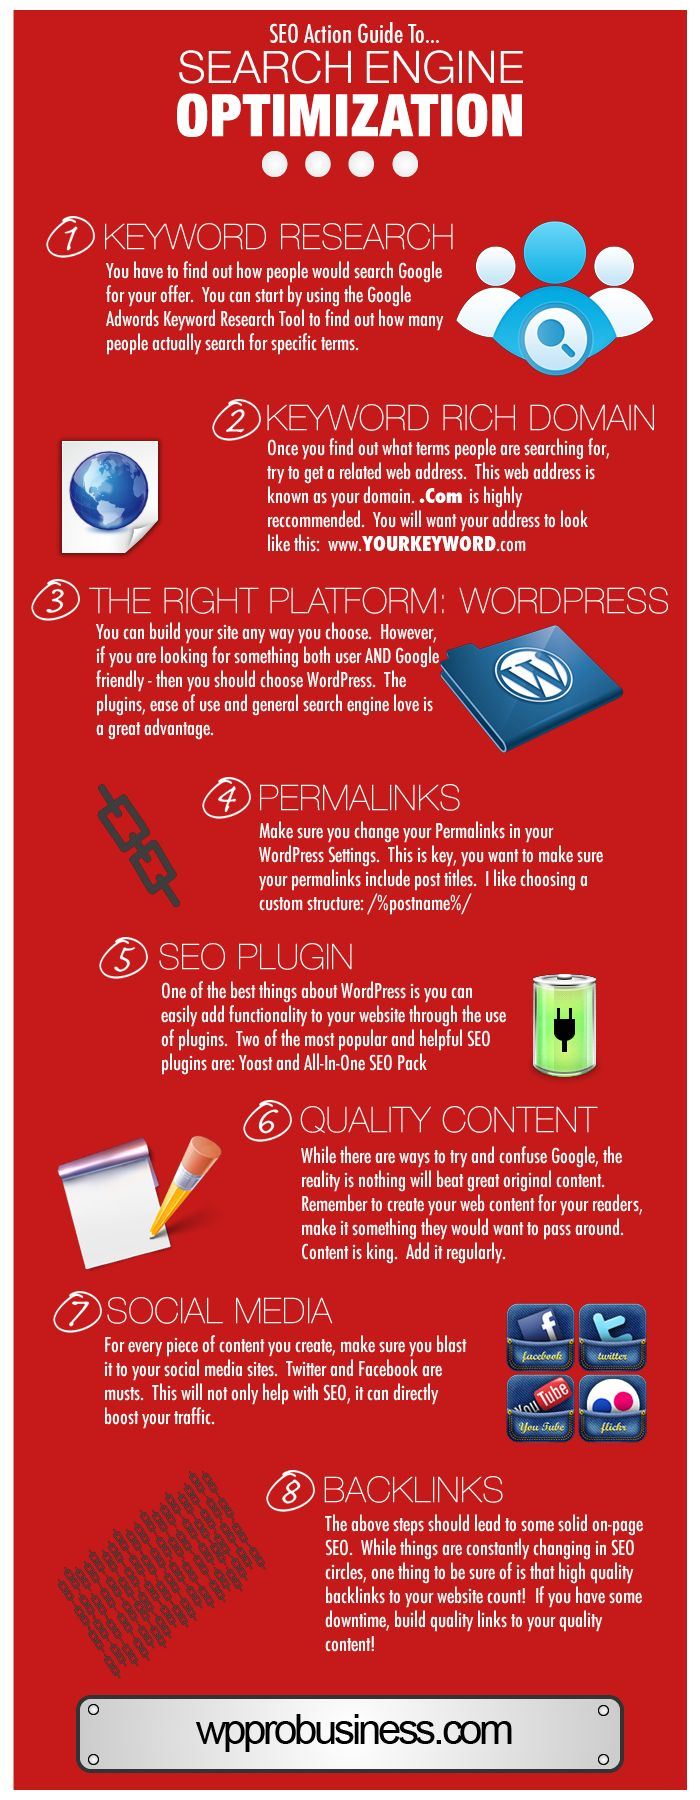 What is SEO - Search Engine Optimization? Webopedia